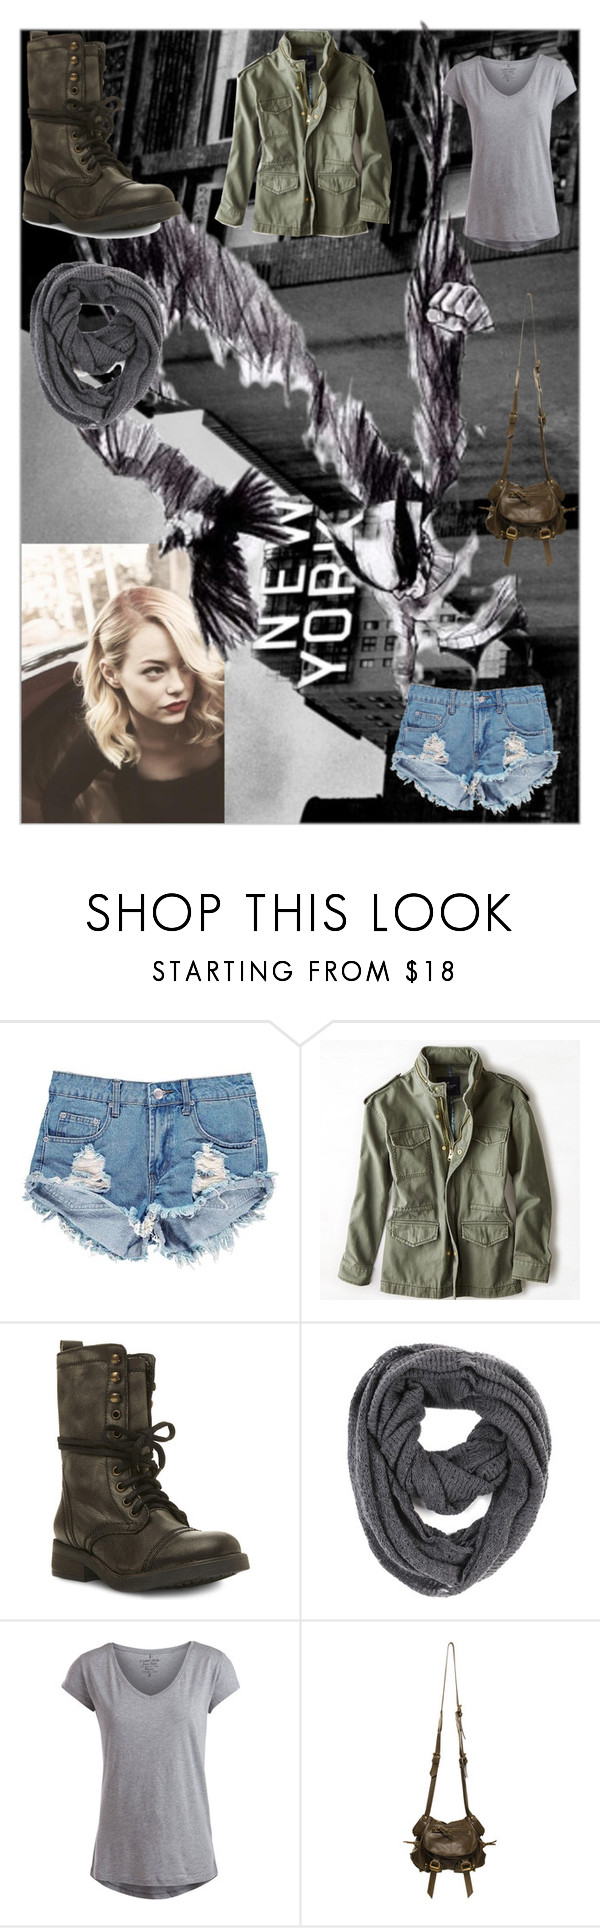 """""""Emma Stone Style: Birdman"""" by thinkinsidethebox ❤ liked on Polyvore featuring Boohoo, American Eagle Outfitters, Steve Madden, Paula Bianco, Pieces and Jérôme Dreyfuss"""